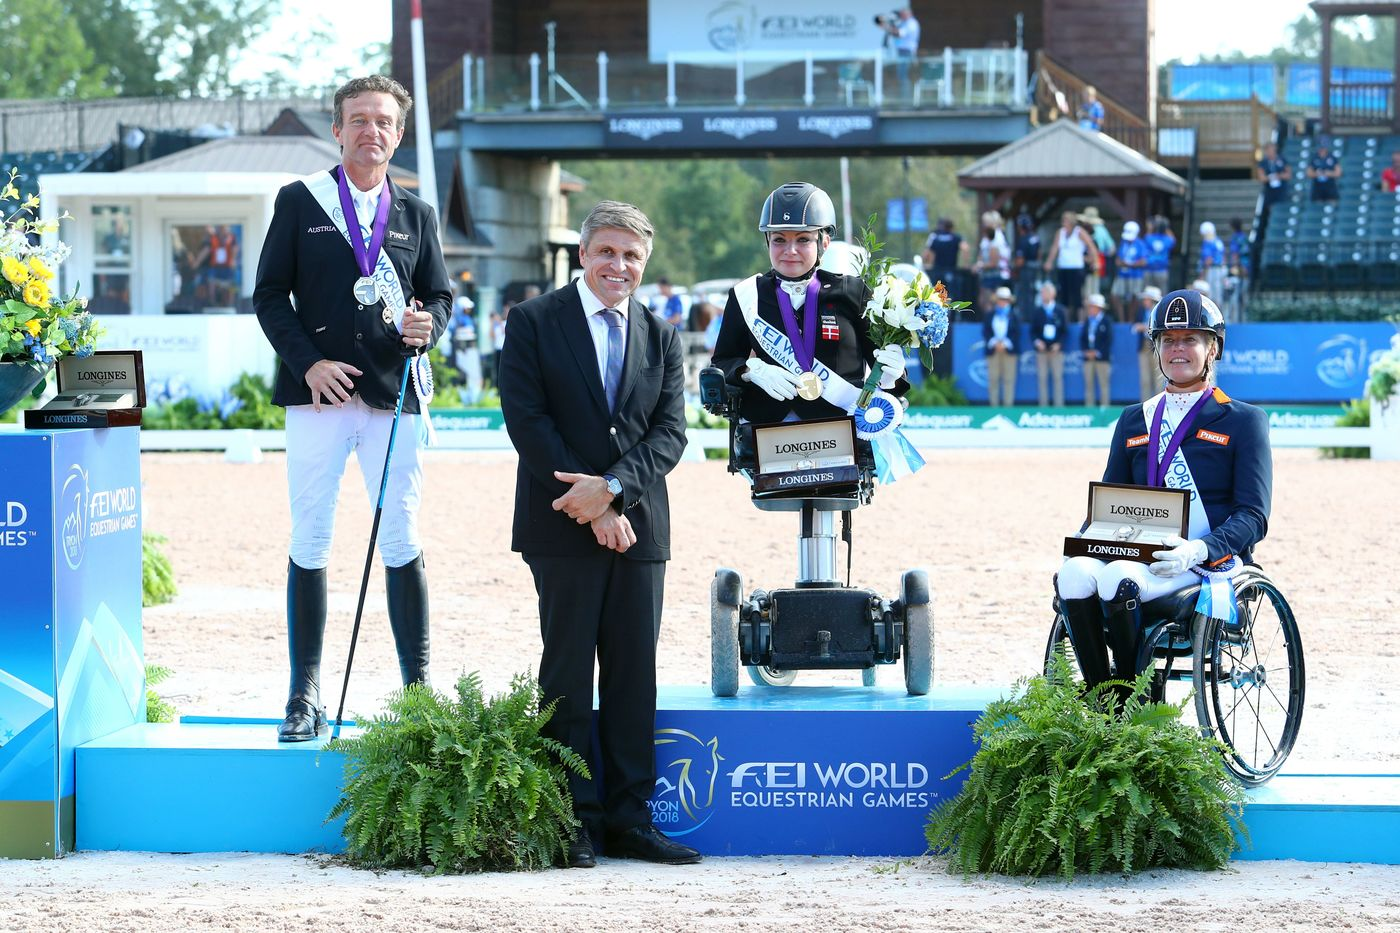 Longines Show Jumping Event: The FEI World Equestrian Games ended beautifully with Germany topping the medal table   15